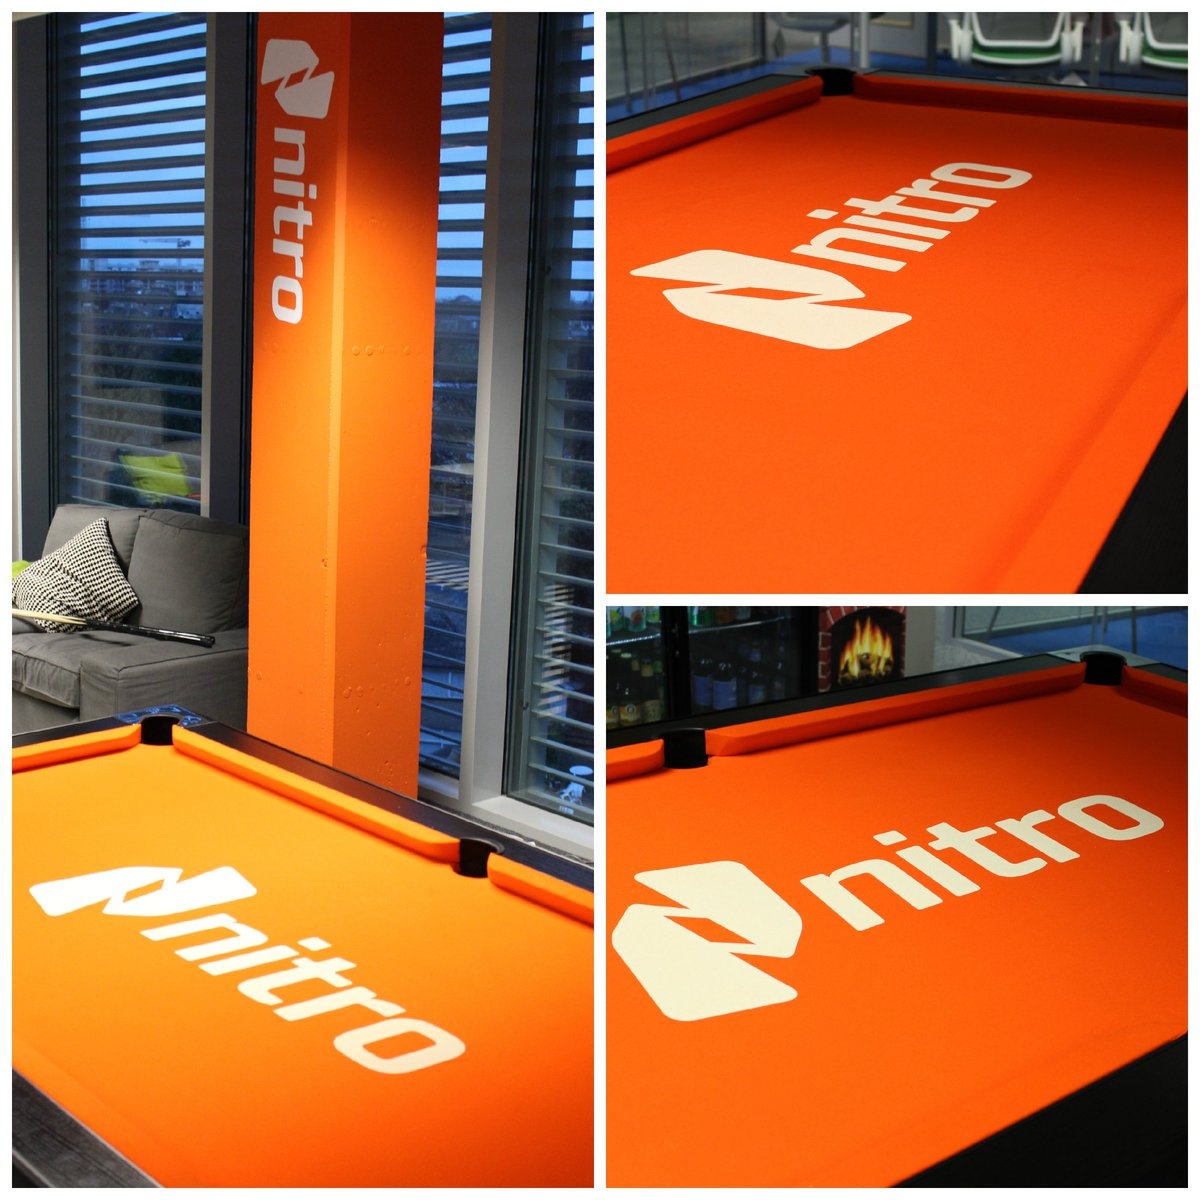 Christmas came early in the Nitro EMEA HQ today when we became the proud owners of a new pool table! #lifeatnitro https://t.co/vLCKmKw4ai